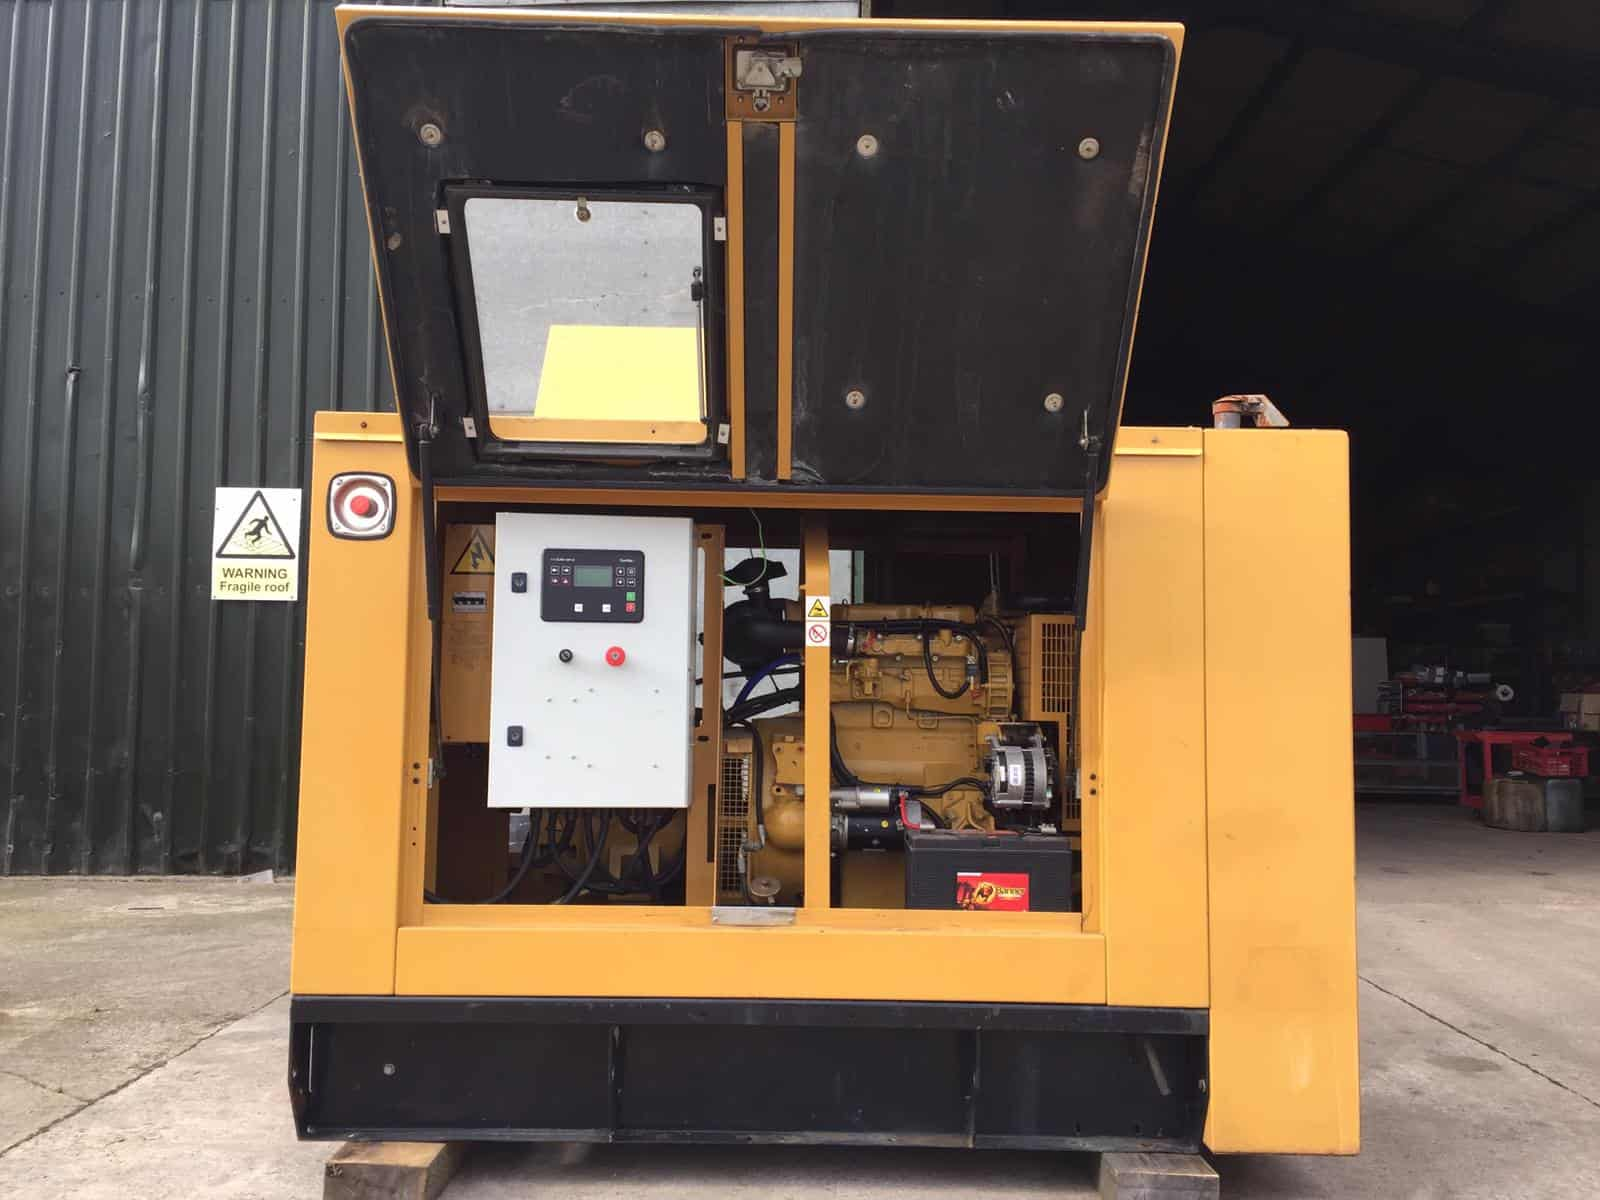 GOOD CONDITION USED CAT GENERATOR FOR SALE